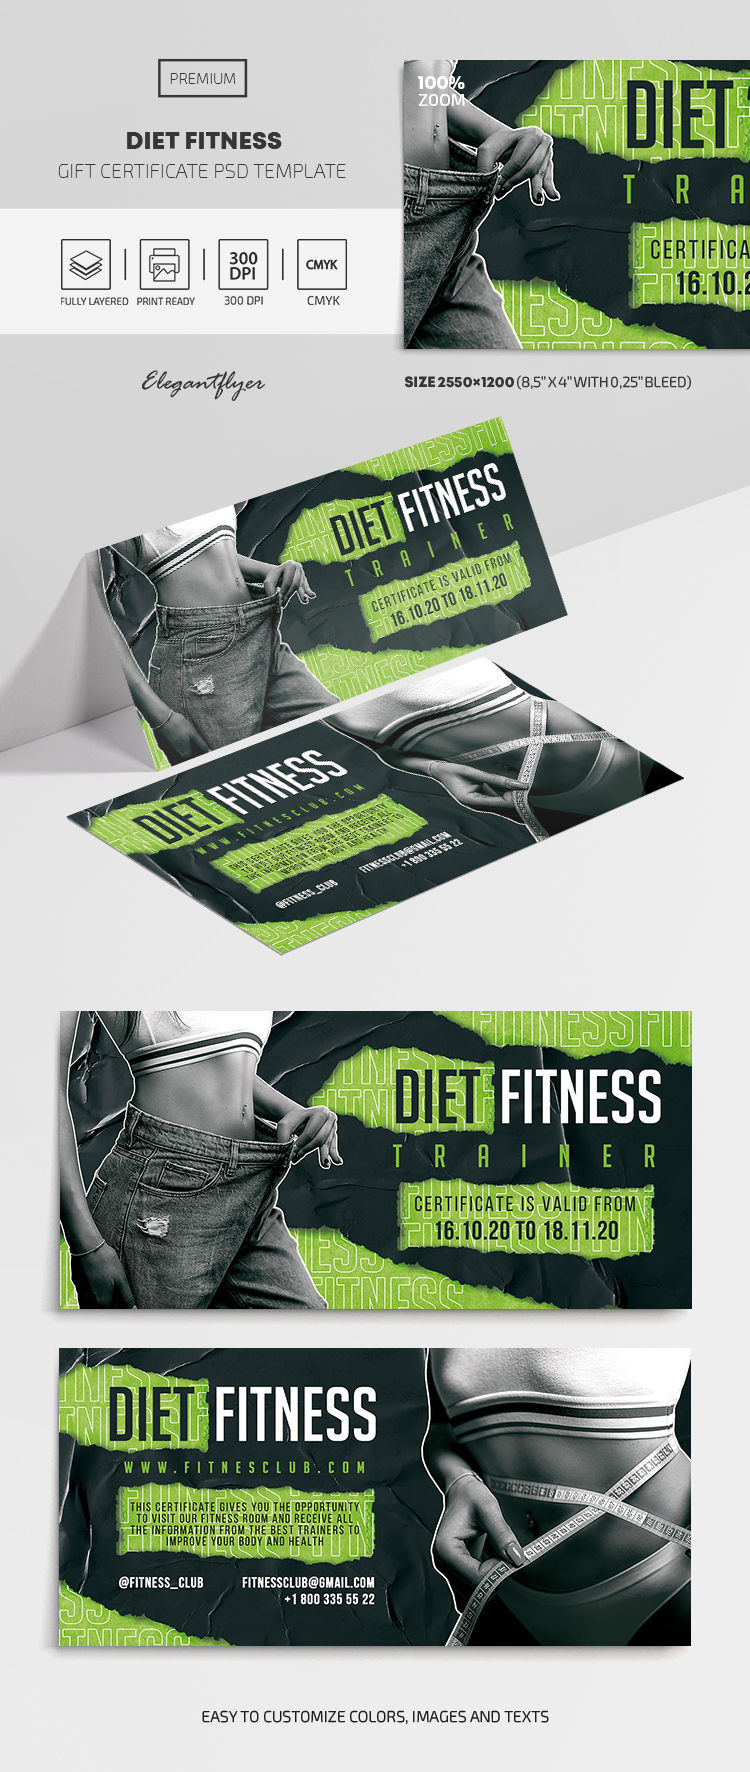 Diet Fitness – Premium Gift Certificate Template in PSD